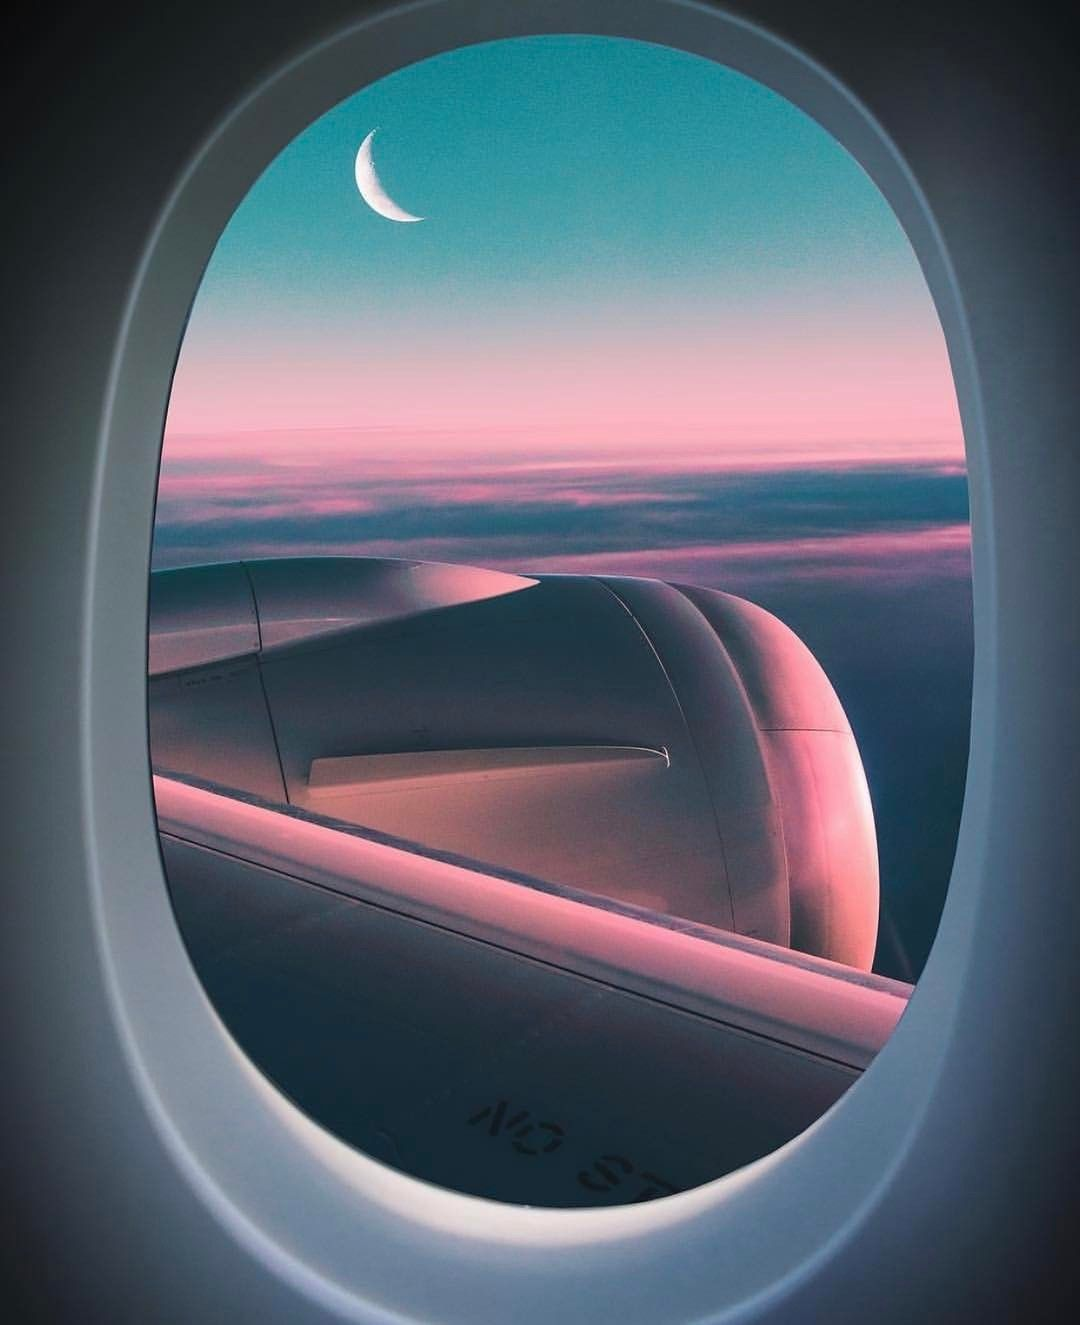 Airplane Window Wallpapers Top Free Airplane Window Backgrounds